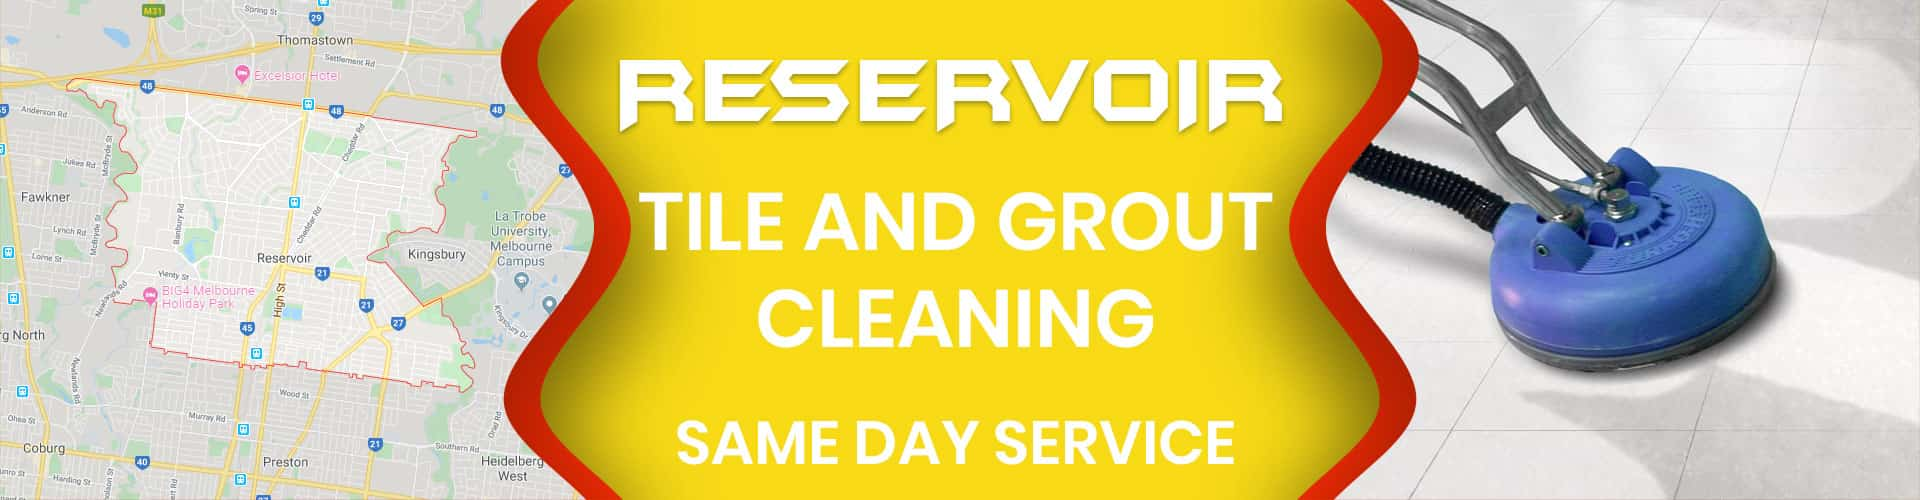 tile and grout cleaning reservoir